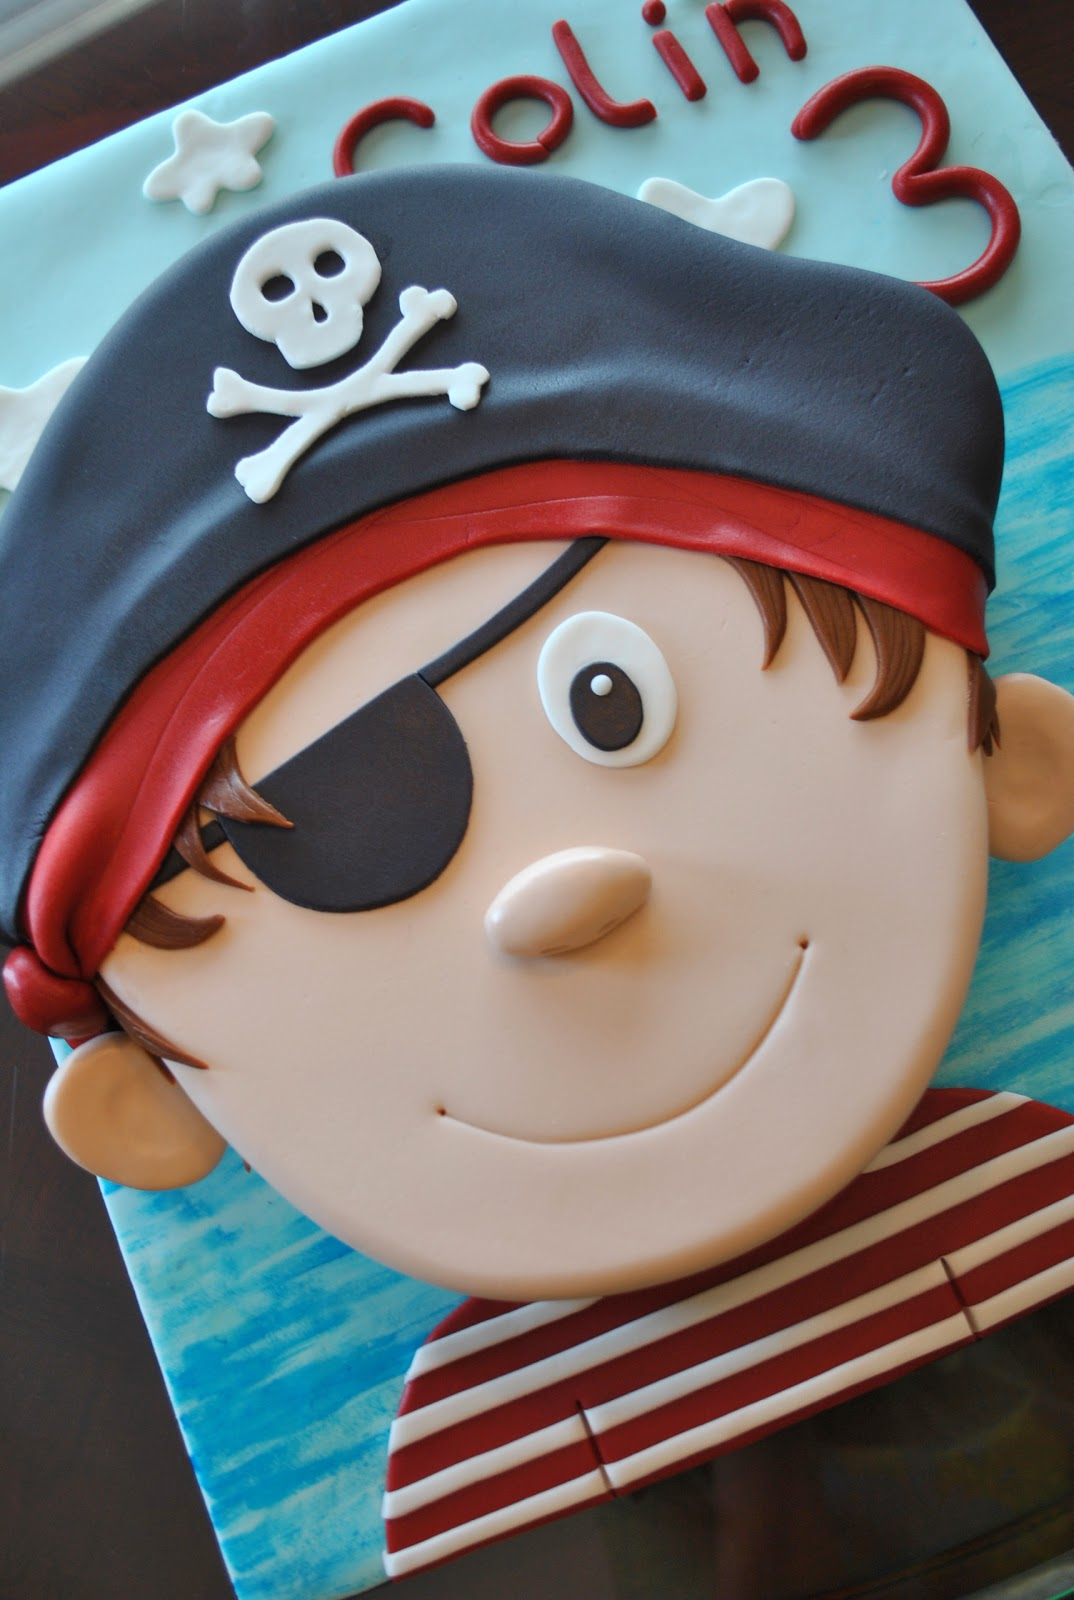 Pirate cake - photo#5